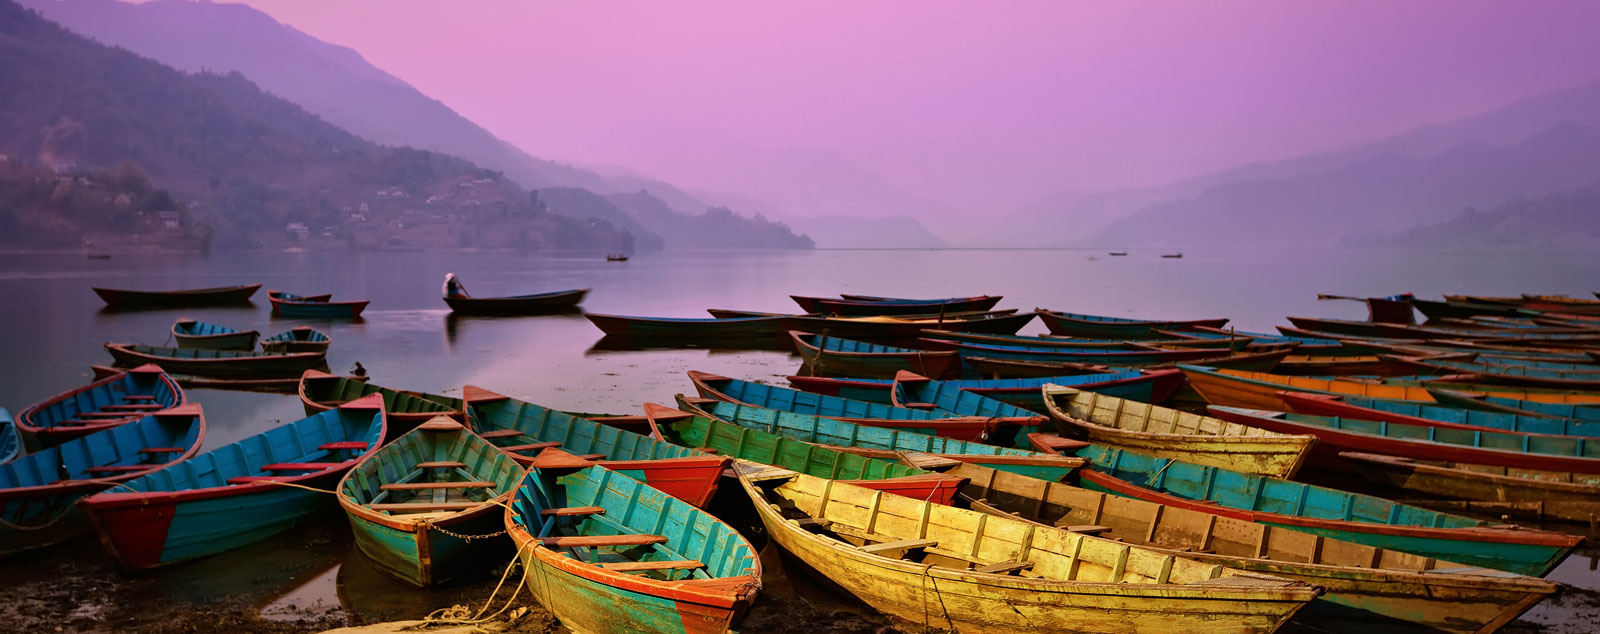 Yellow and green boats on Lake Phewa with purple haze in background,